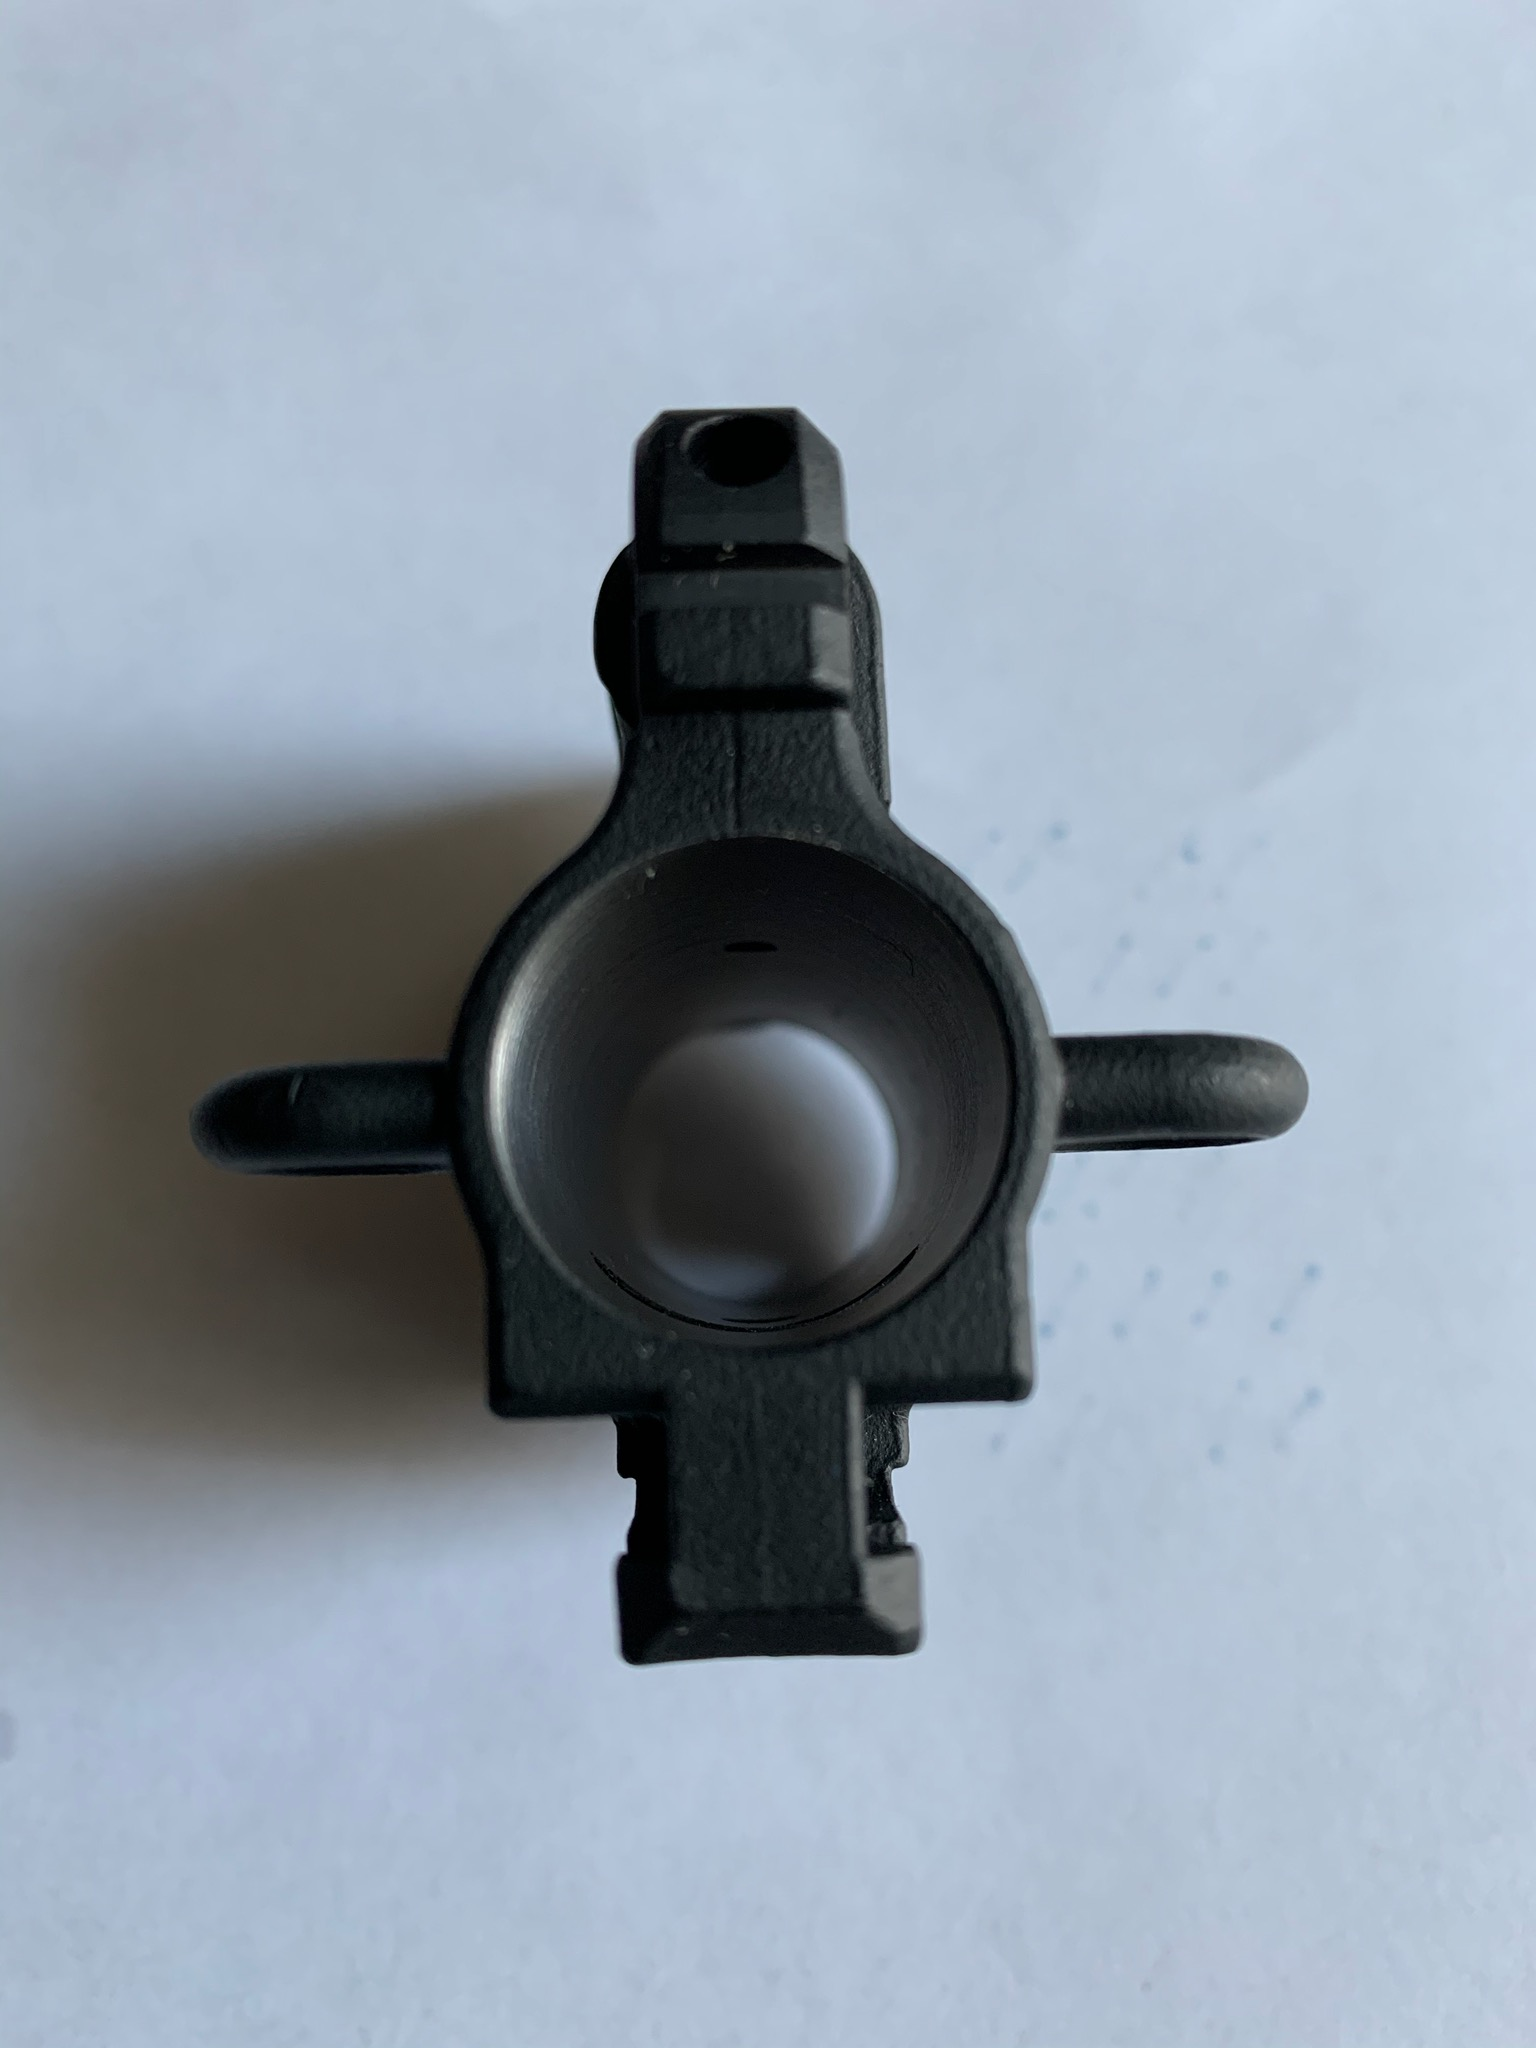 WTS: HK417 slim-line stock & 416 parts (SOLD)-img_4130.heic.jpeg